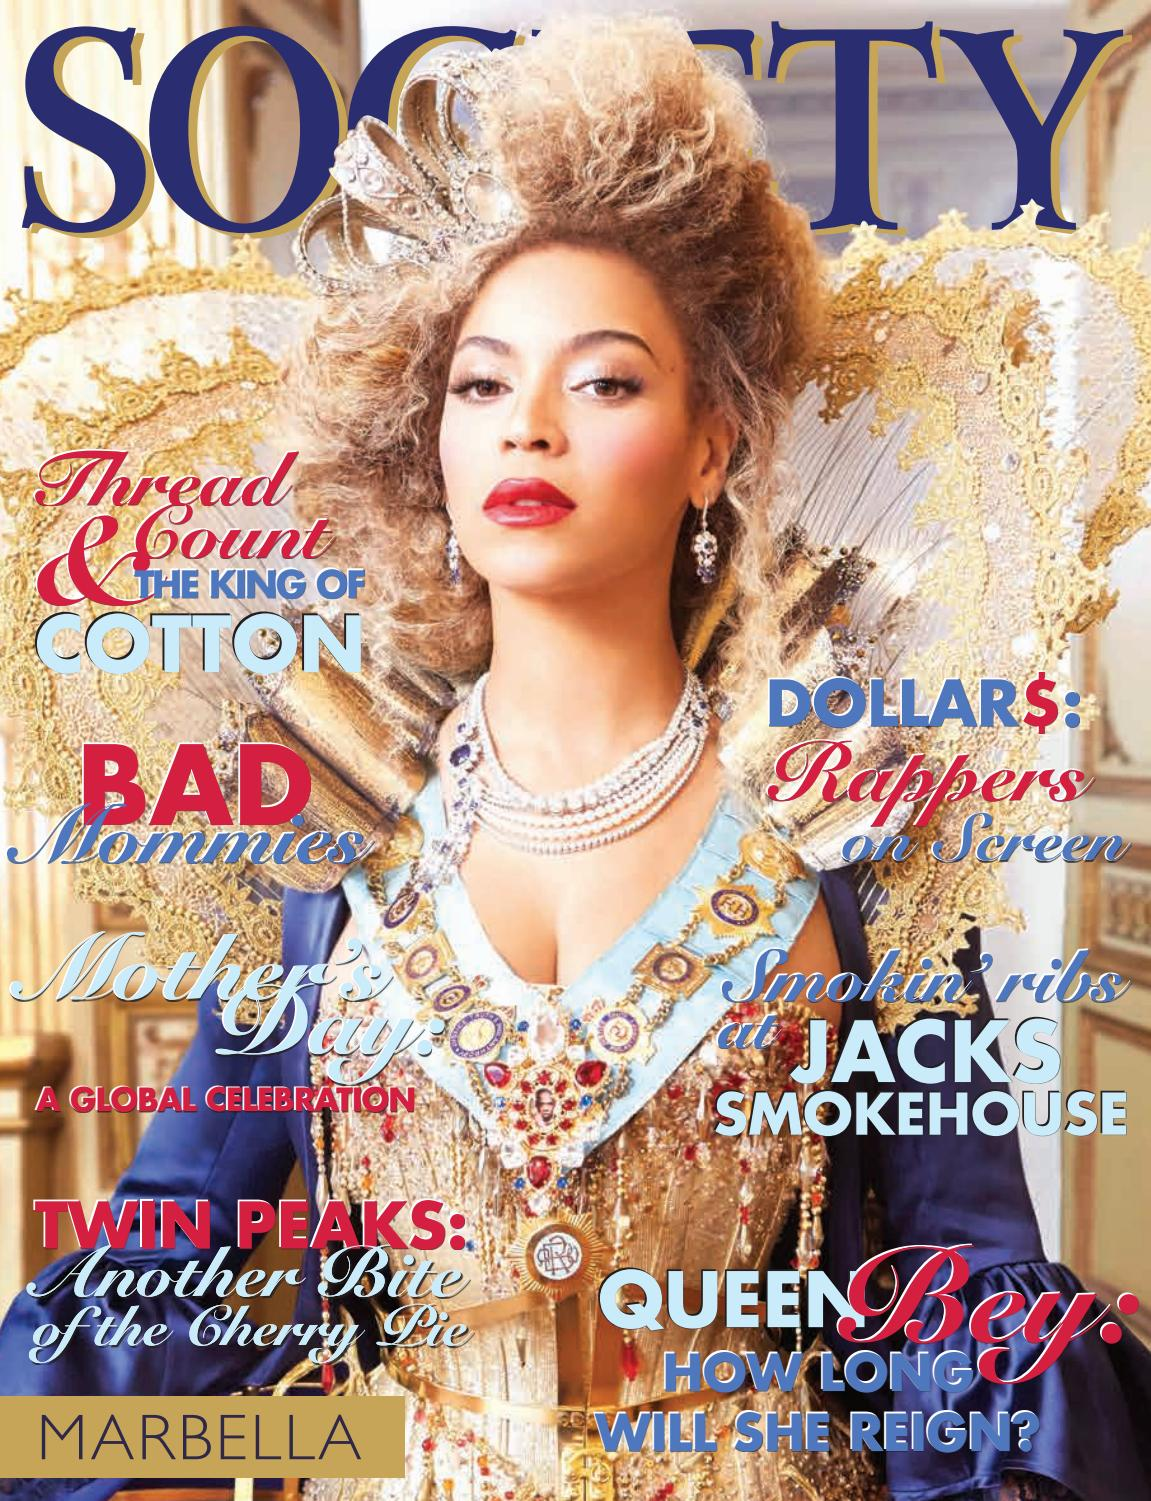 Society Magazine March 2017 - Queen Beyoncé by Icon Publishing - issuu